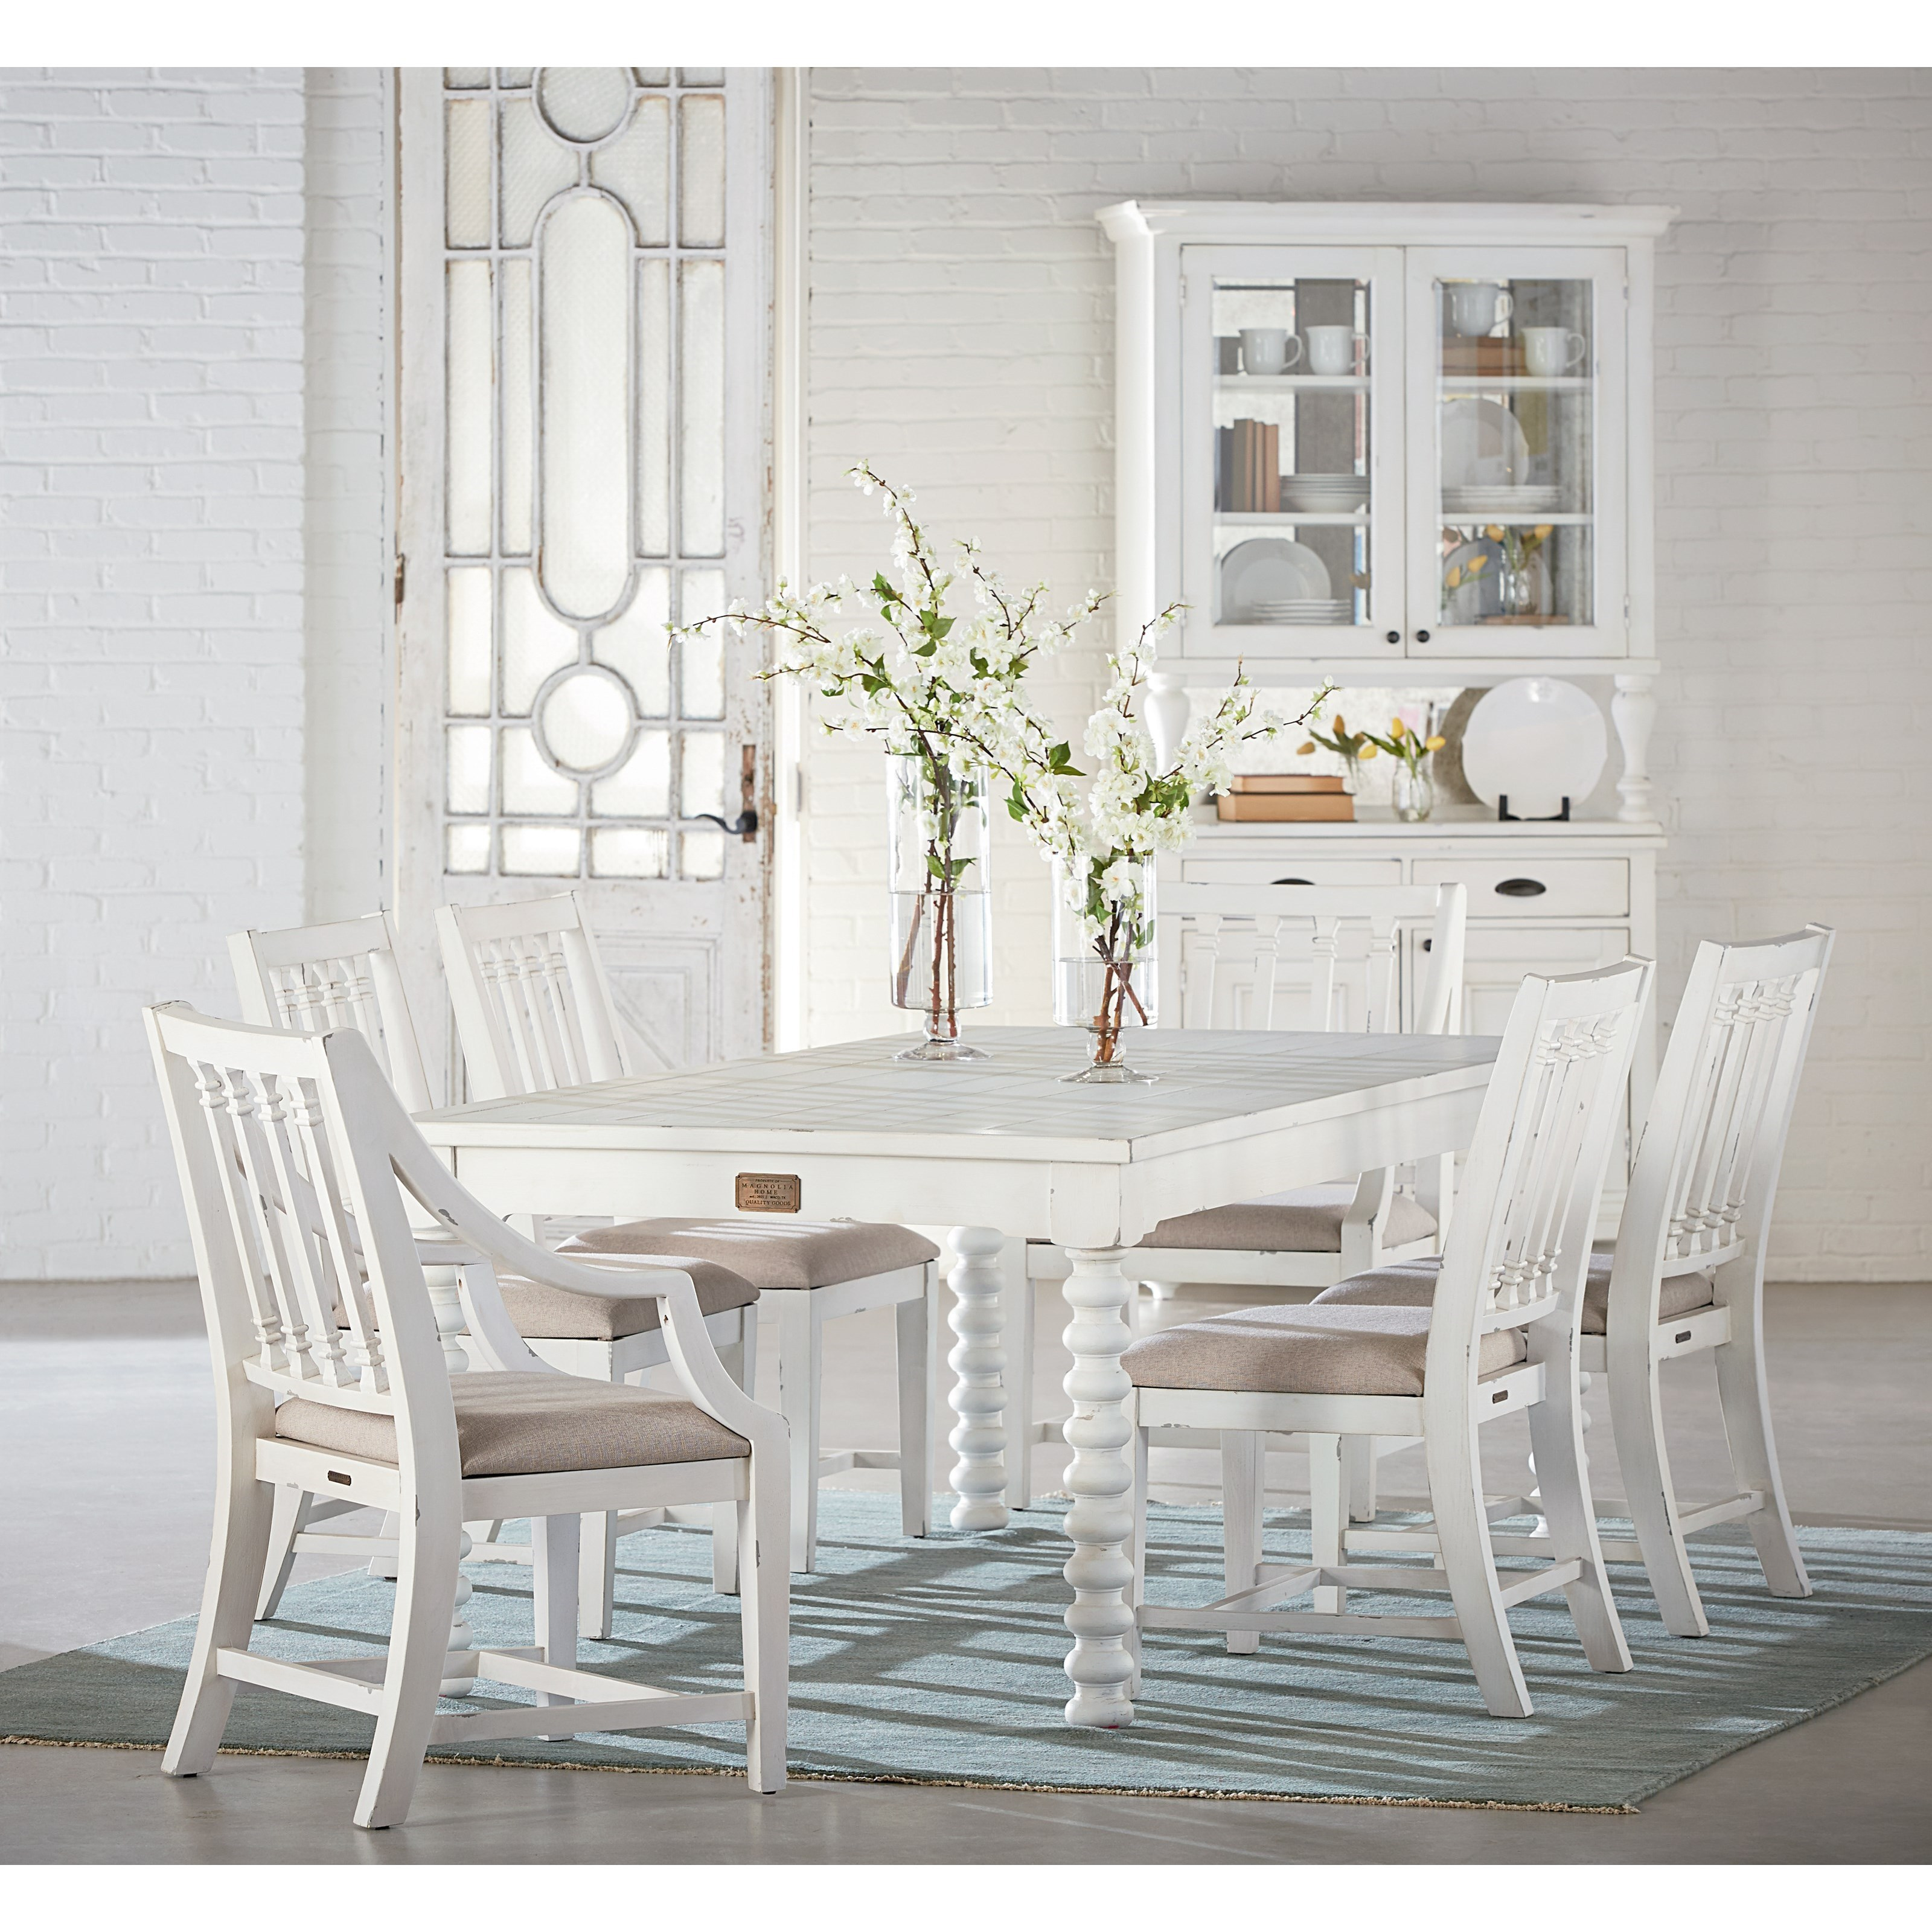 Chicago Traditional Formal Dining Room Furniture Stores: Magnolia Home By Joanna Gaines Traditional Traditional